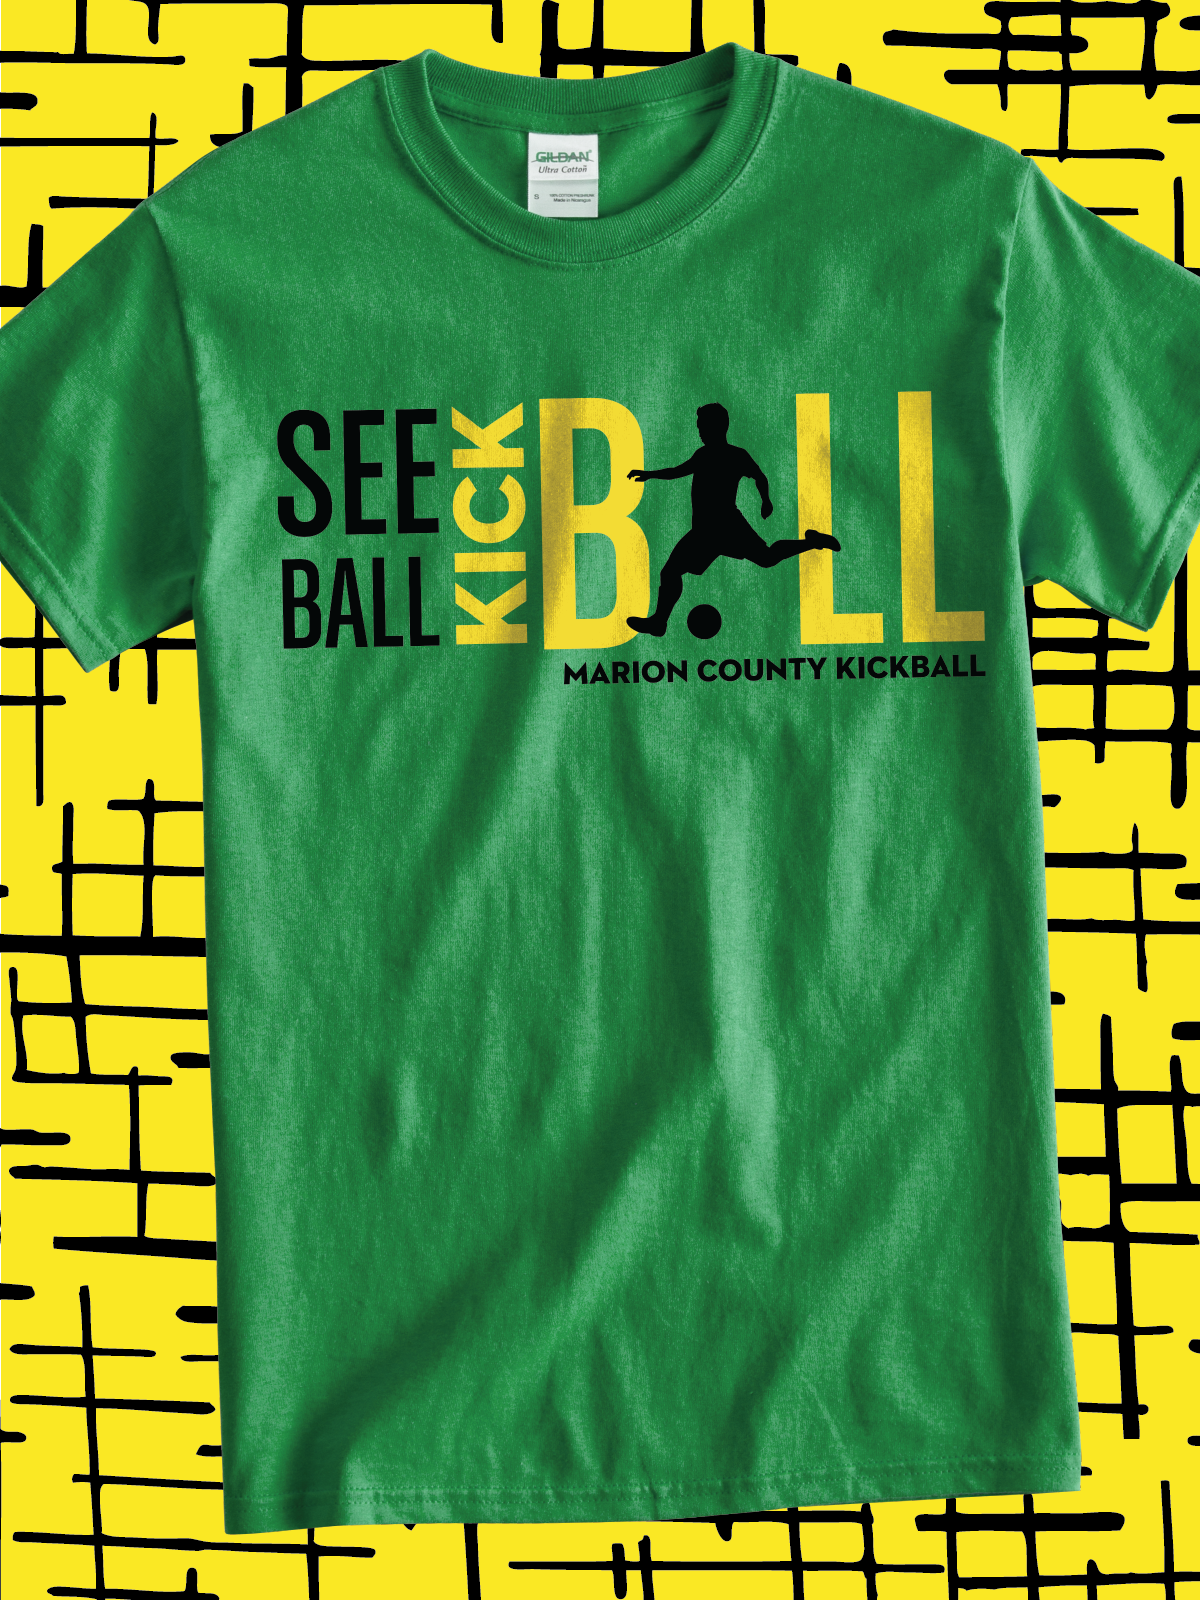 fa642d4a8 See Ball Kick Ball - funny design idea for custom kickball or soccer  jerseys, t-shirts, team shirts, league shirts, hoodies, bags, water  bottles, and more